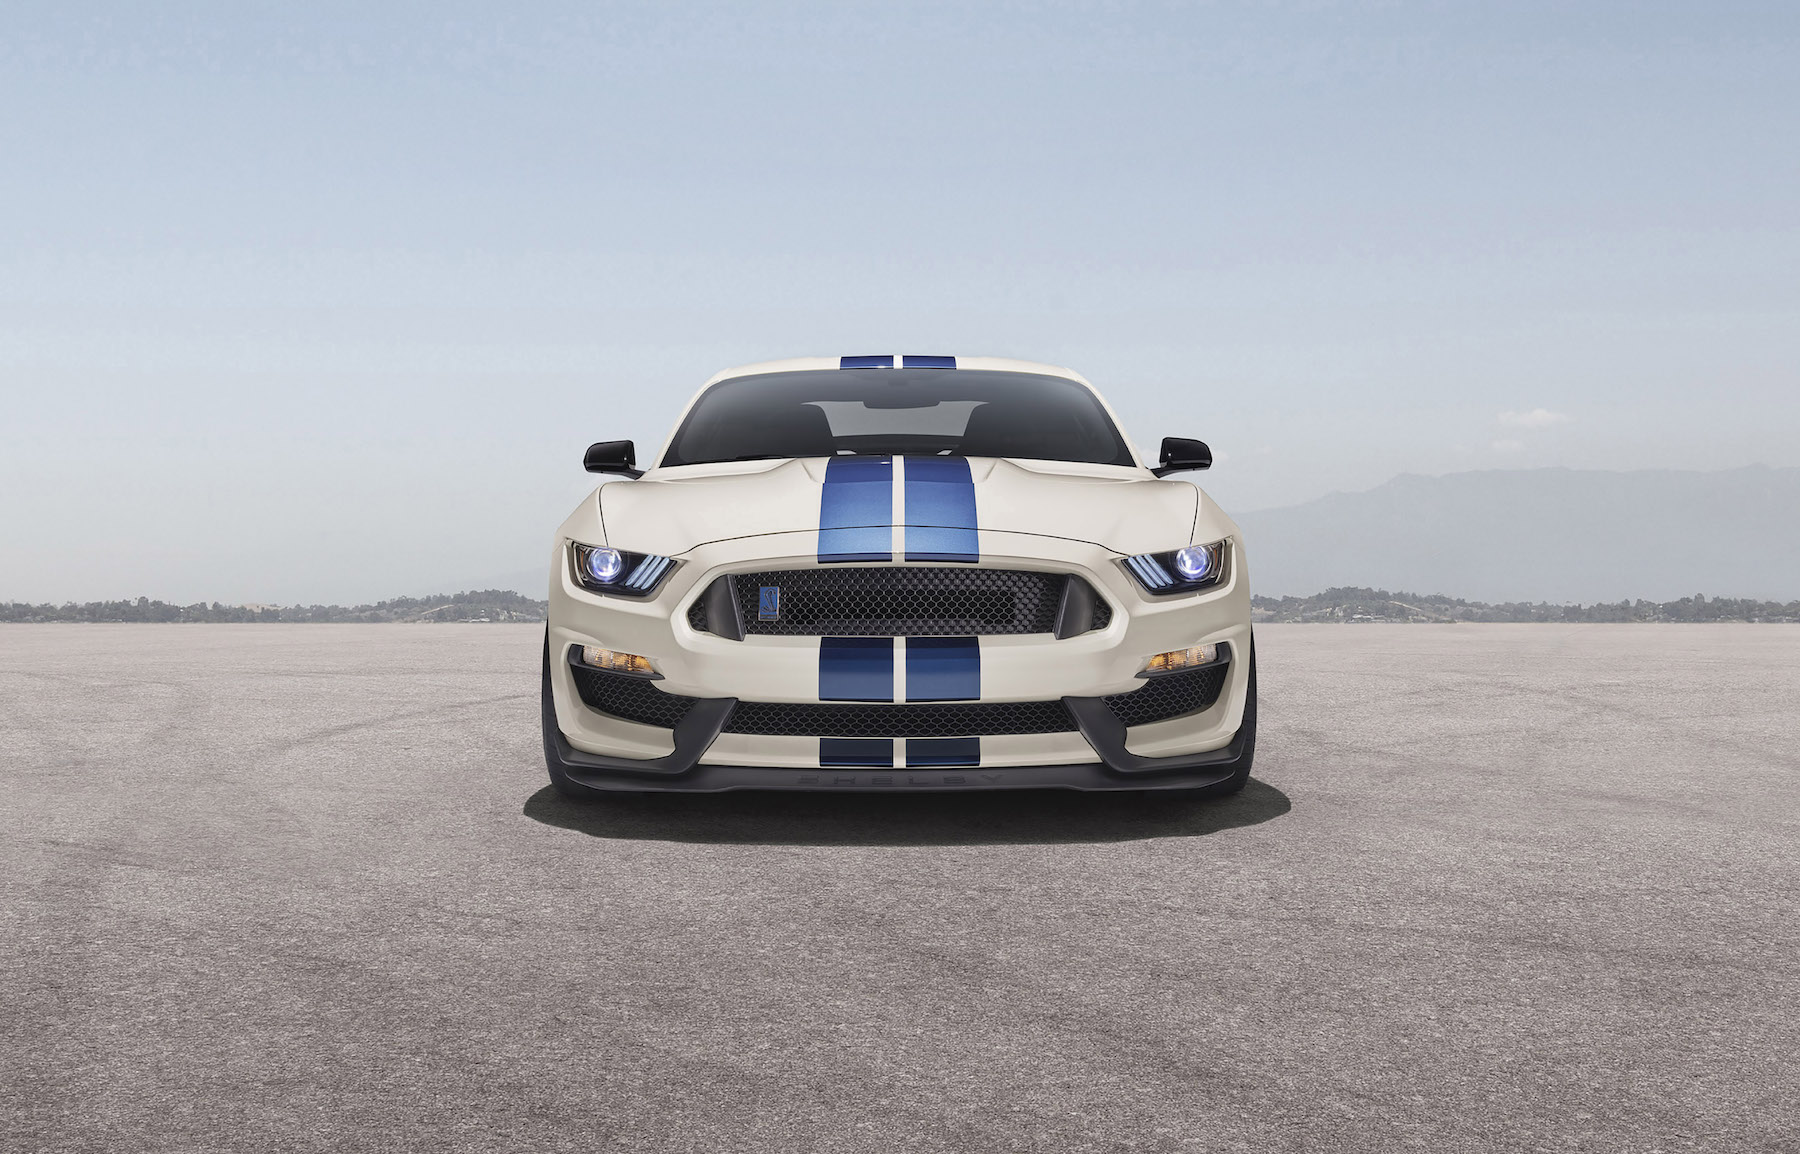 Heritage Edition Package available on 2020 Mustang Shelby GT350 and GT350R models features a unique throwback livery with Wimbledon White paint and Guardsman Blue side and over-the-top racing stripes